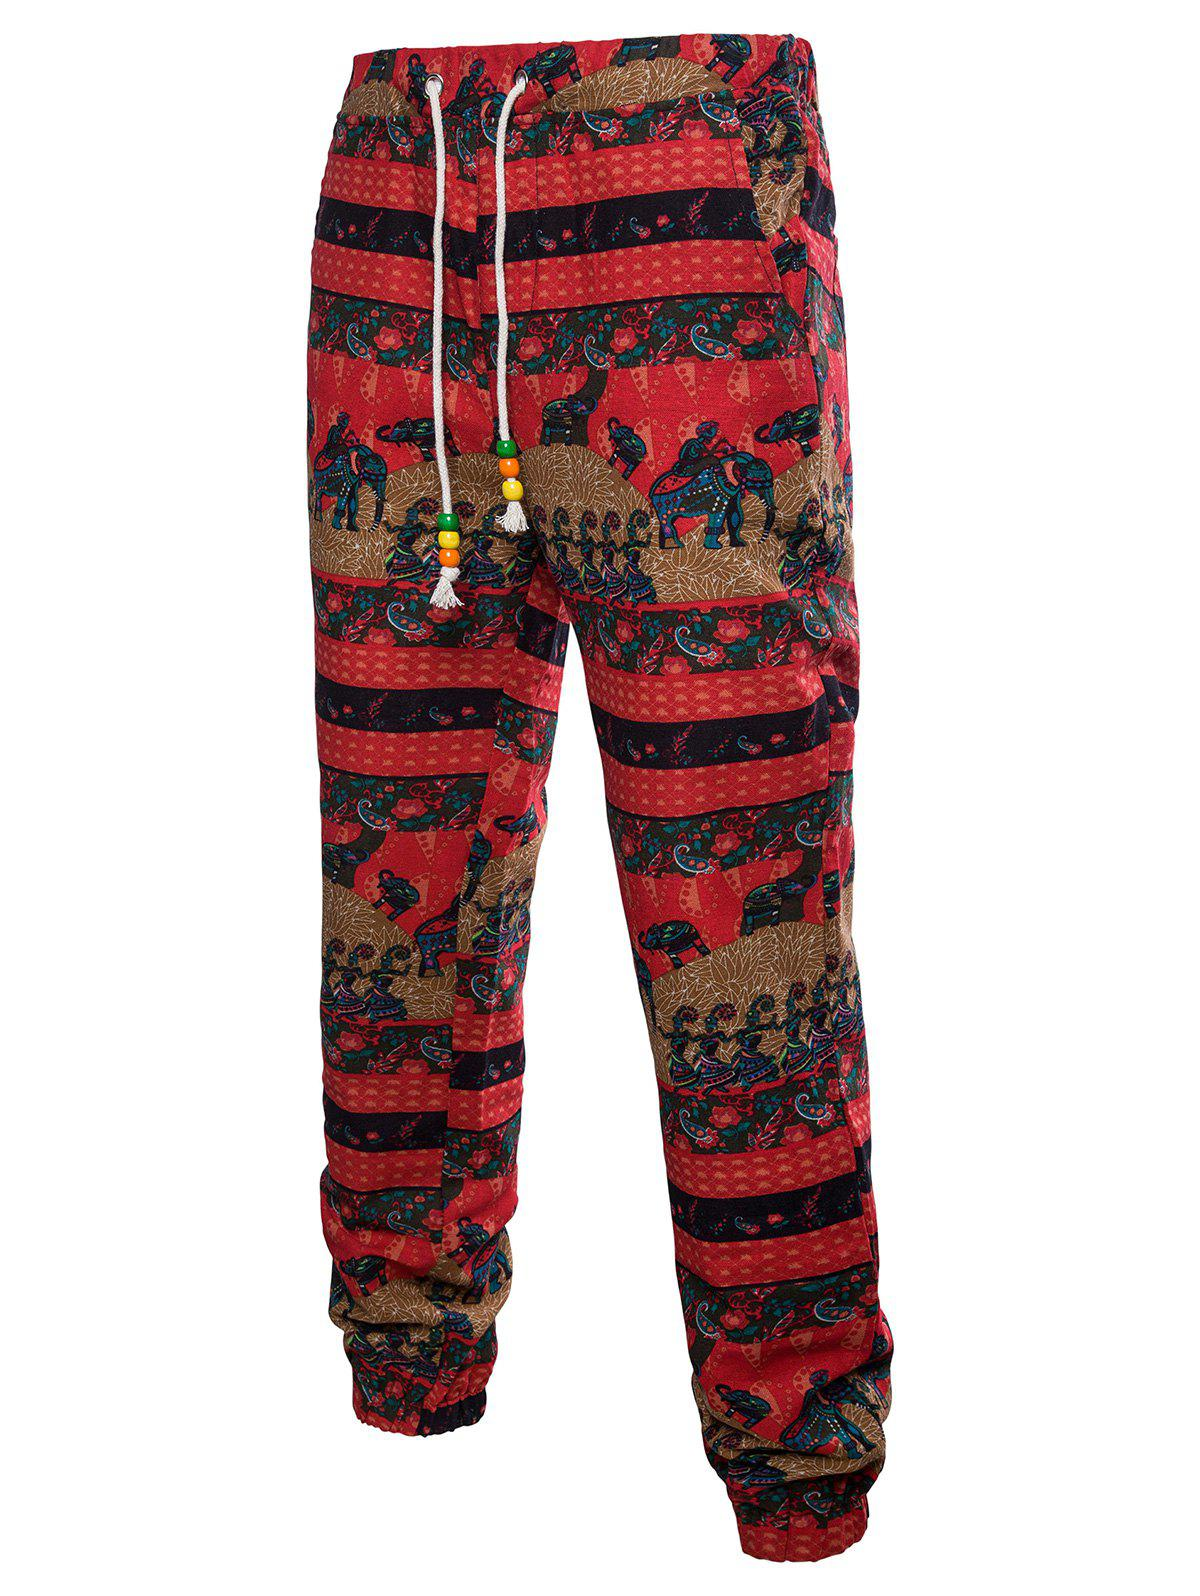 New Drawstring Waist Elephant Striped Pattern Sweatpants